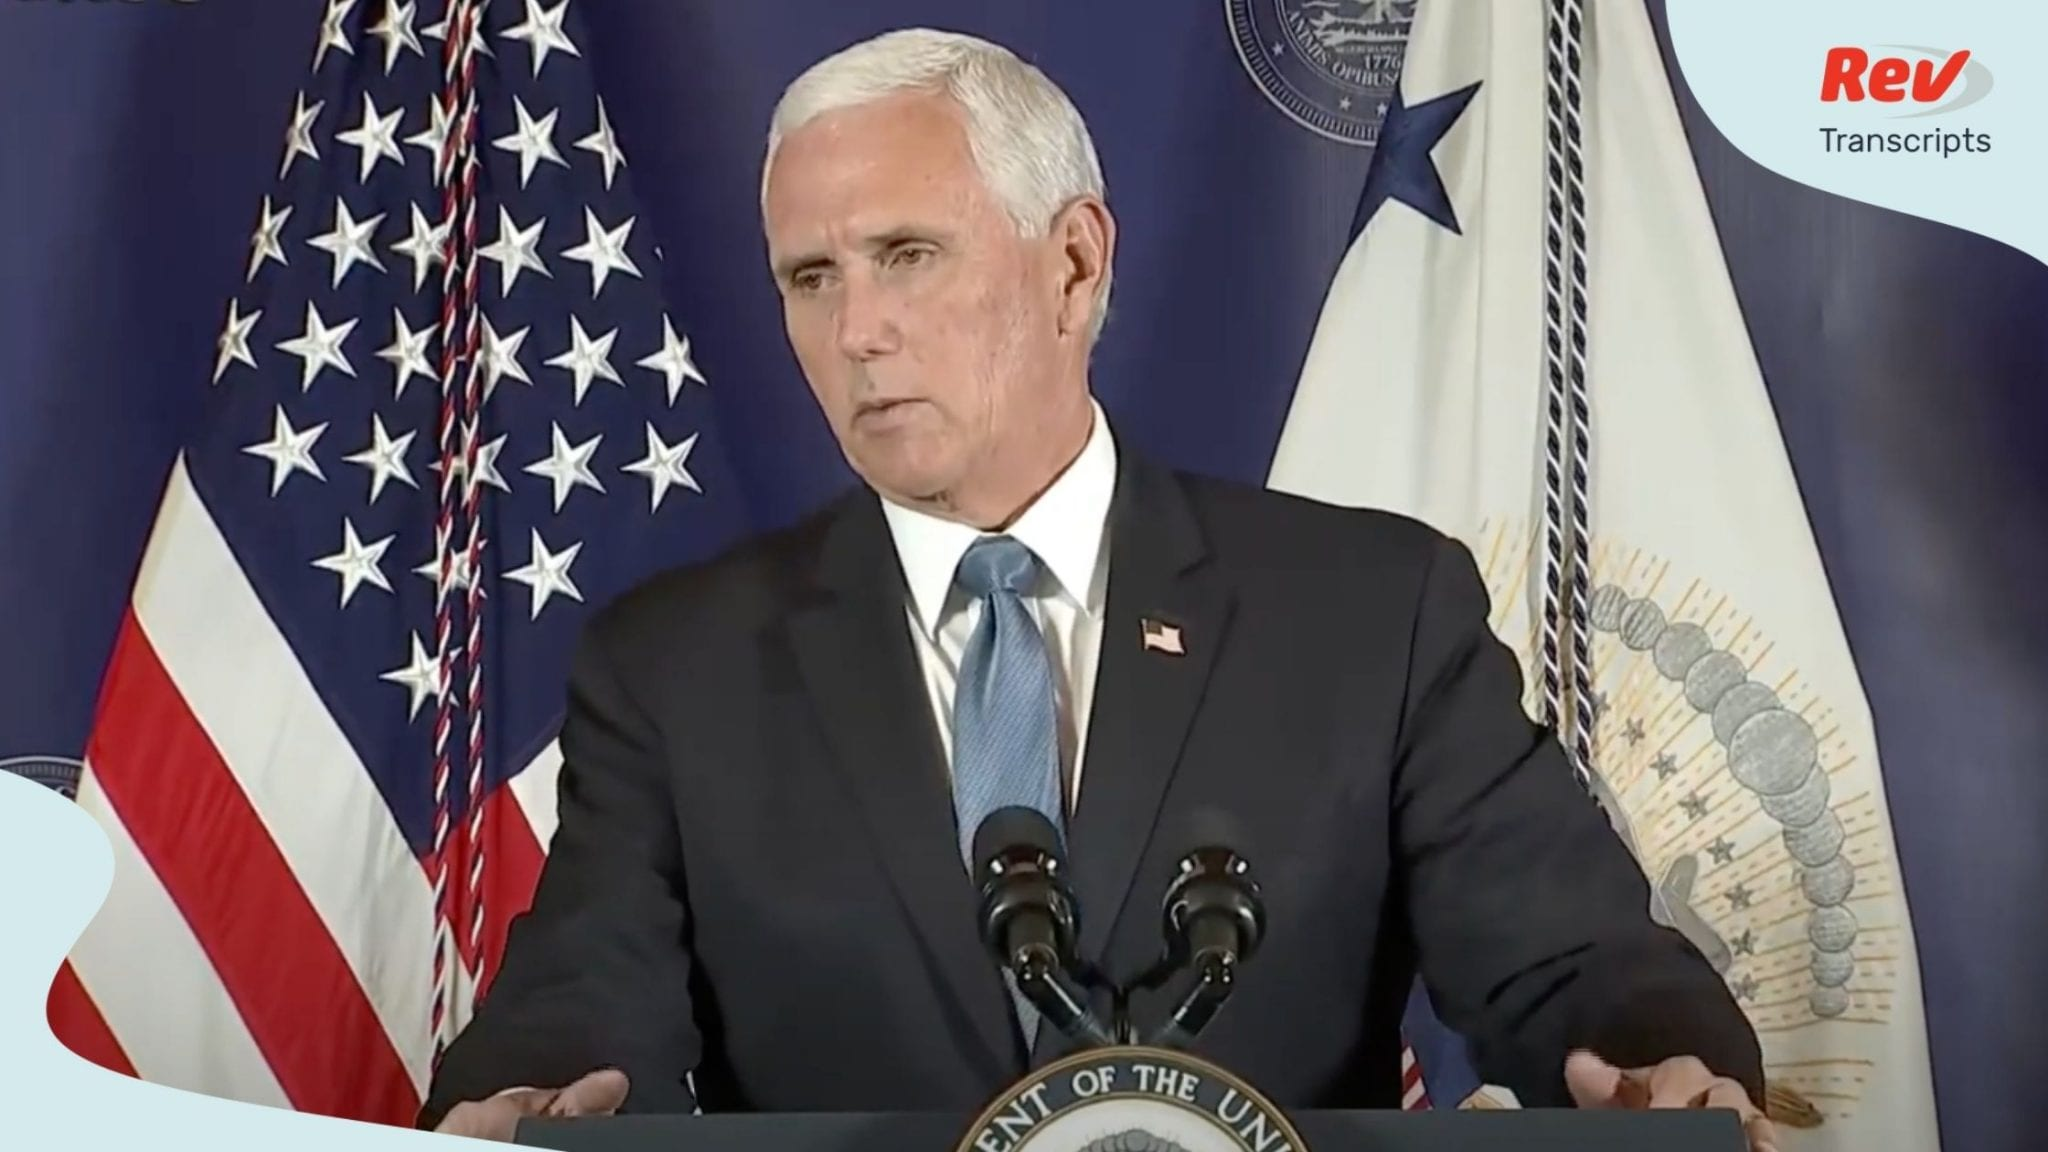 VP Pence held press conference in SC July 21